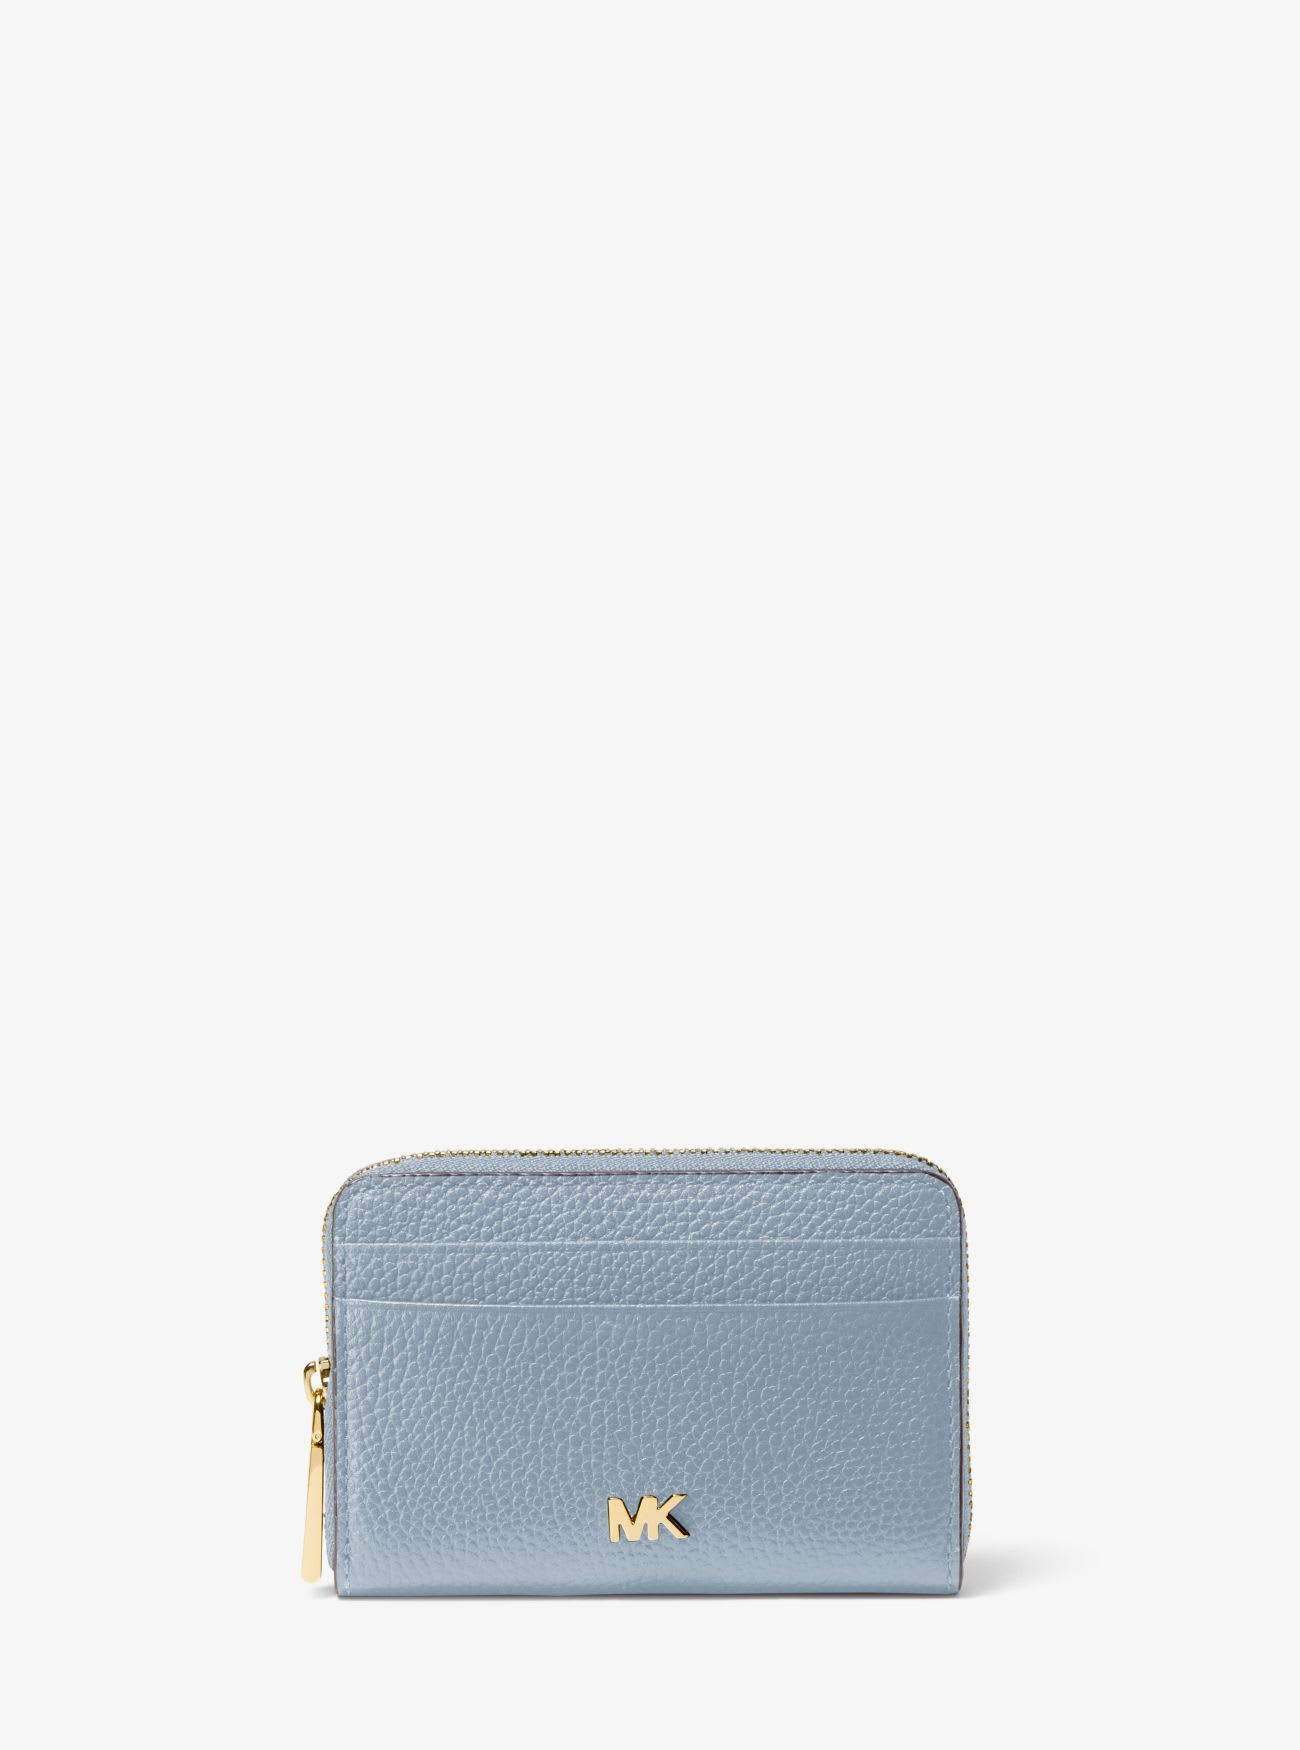 Michael Kors light blue wallet / purse